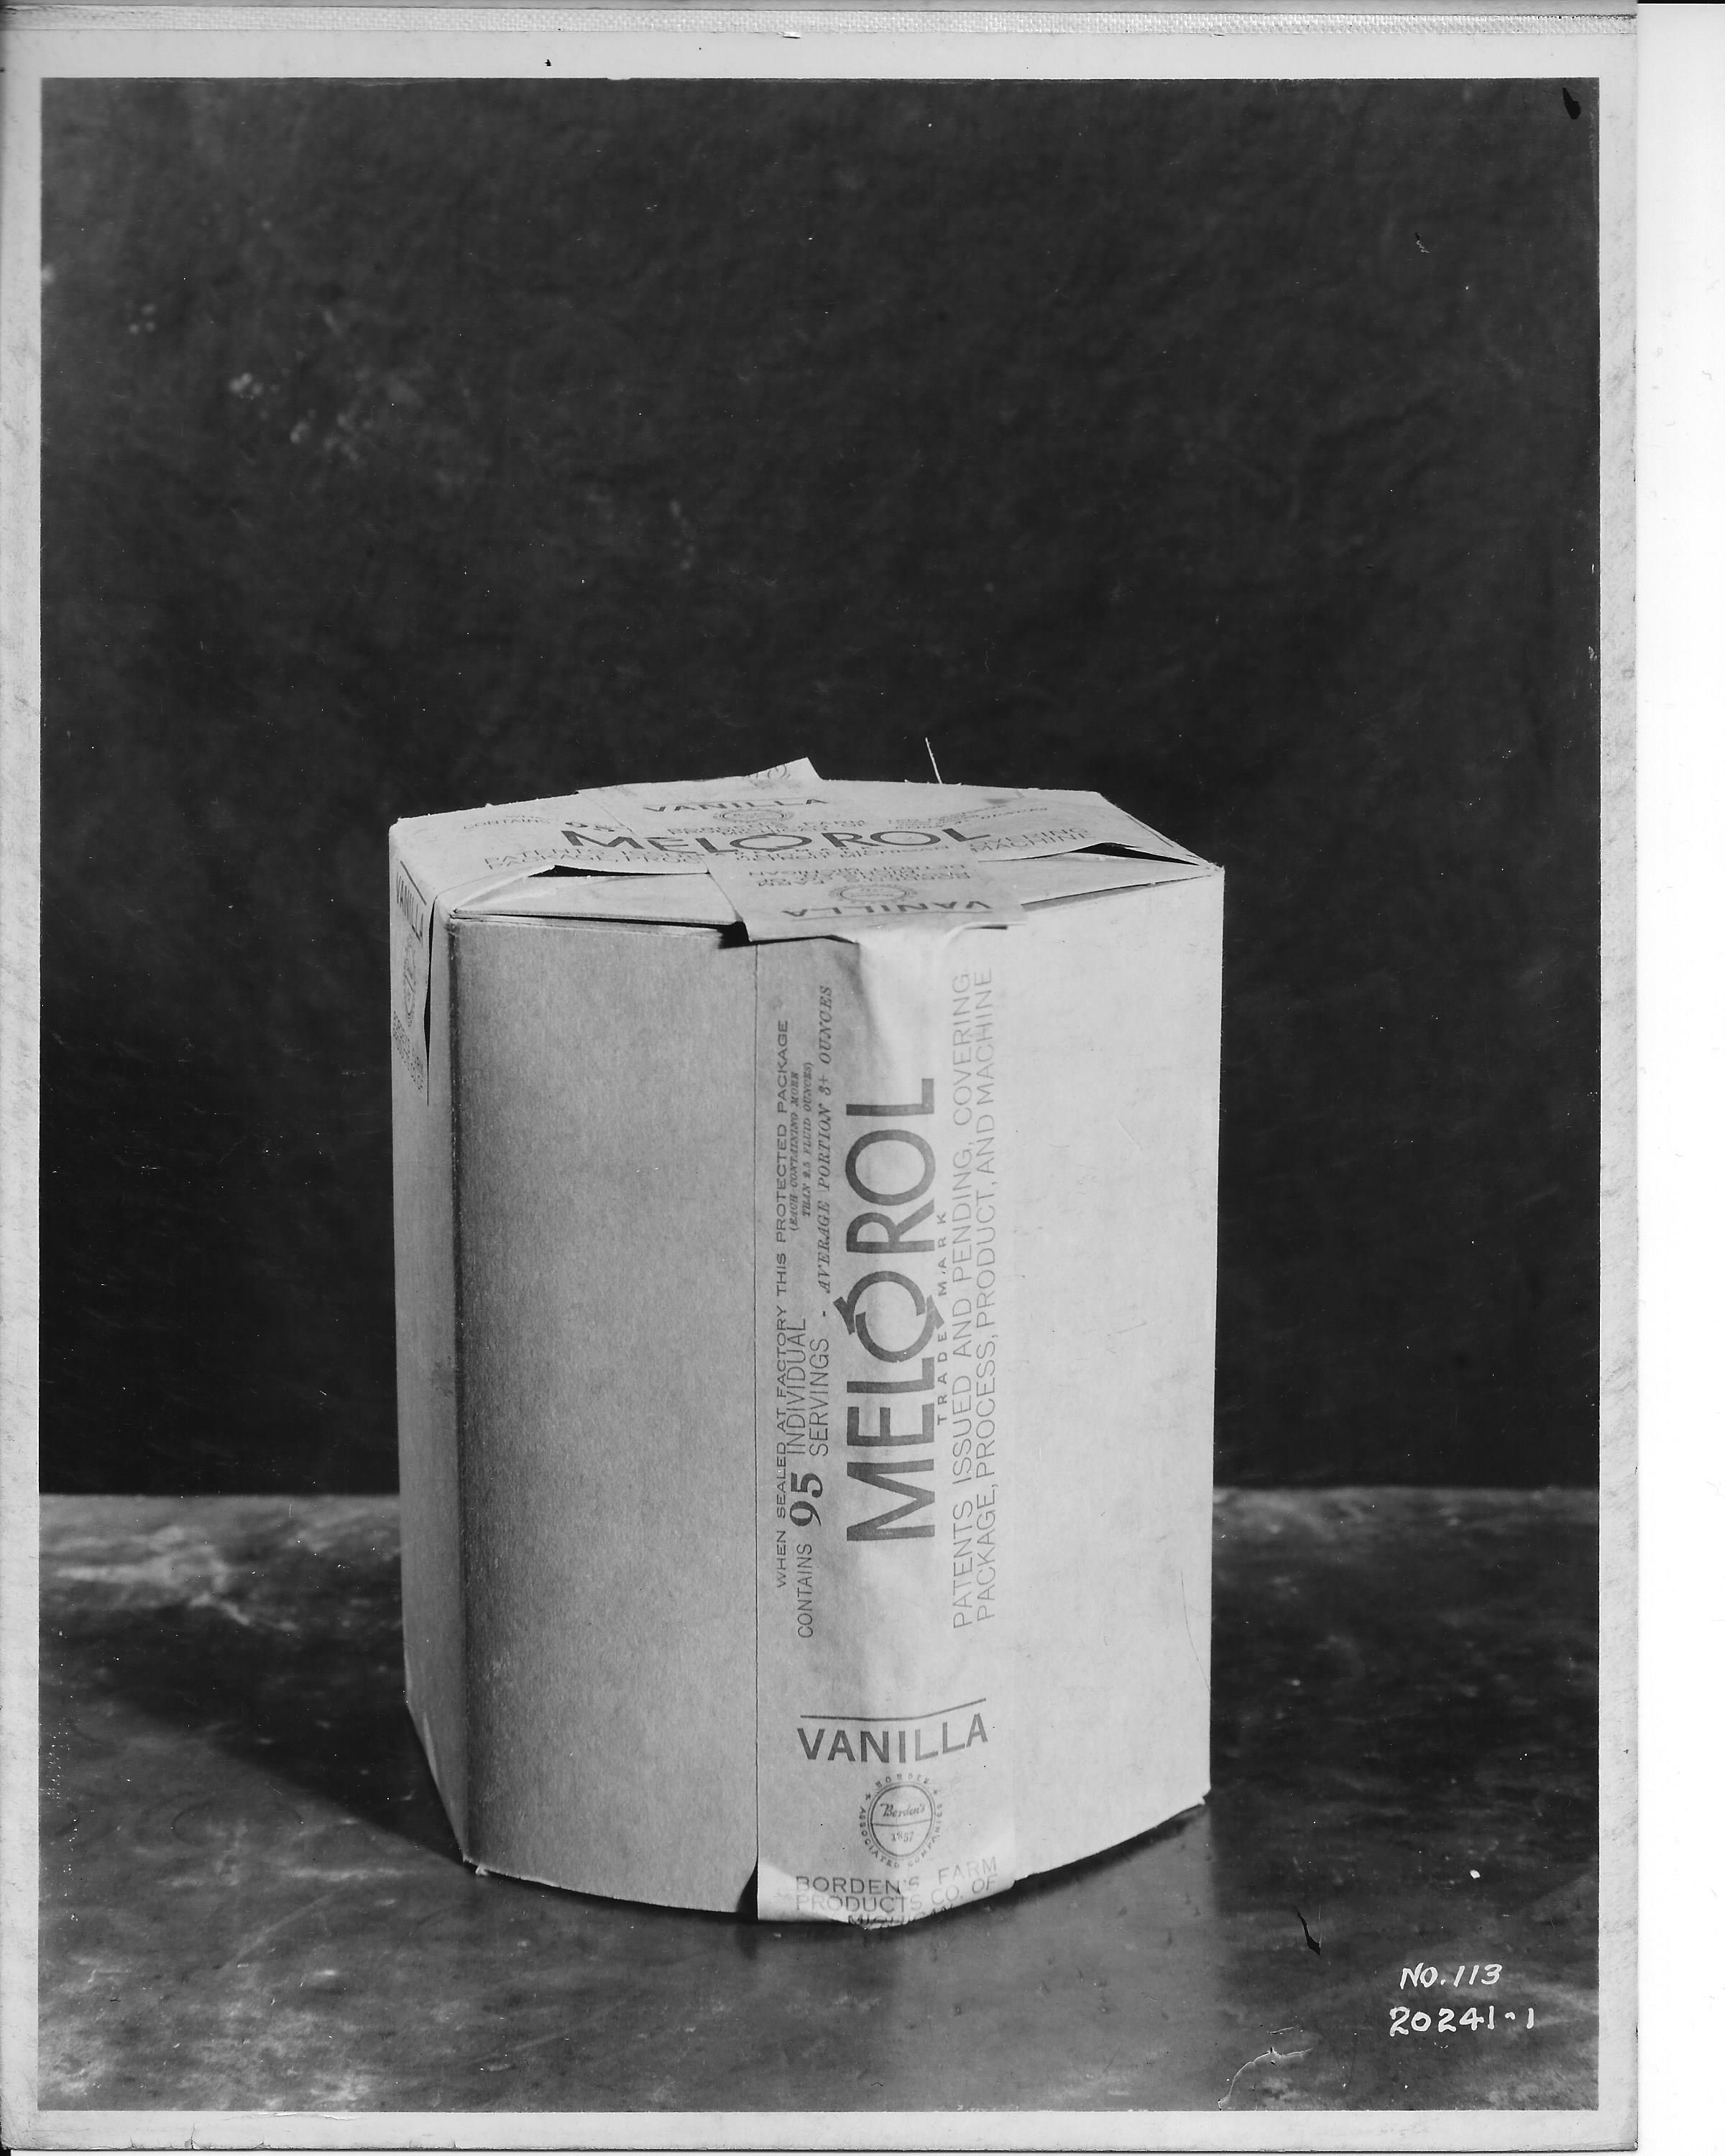 MelOrol package